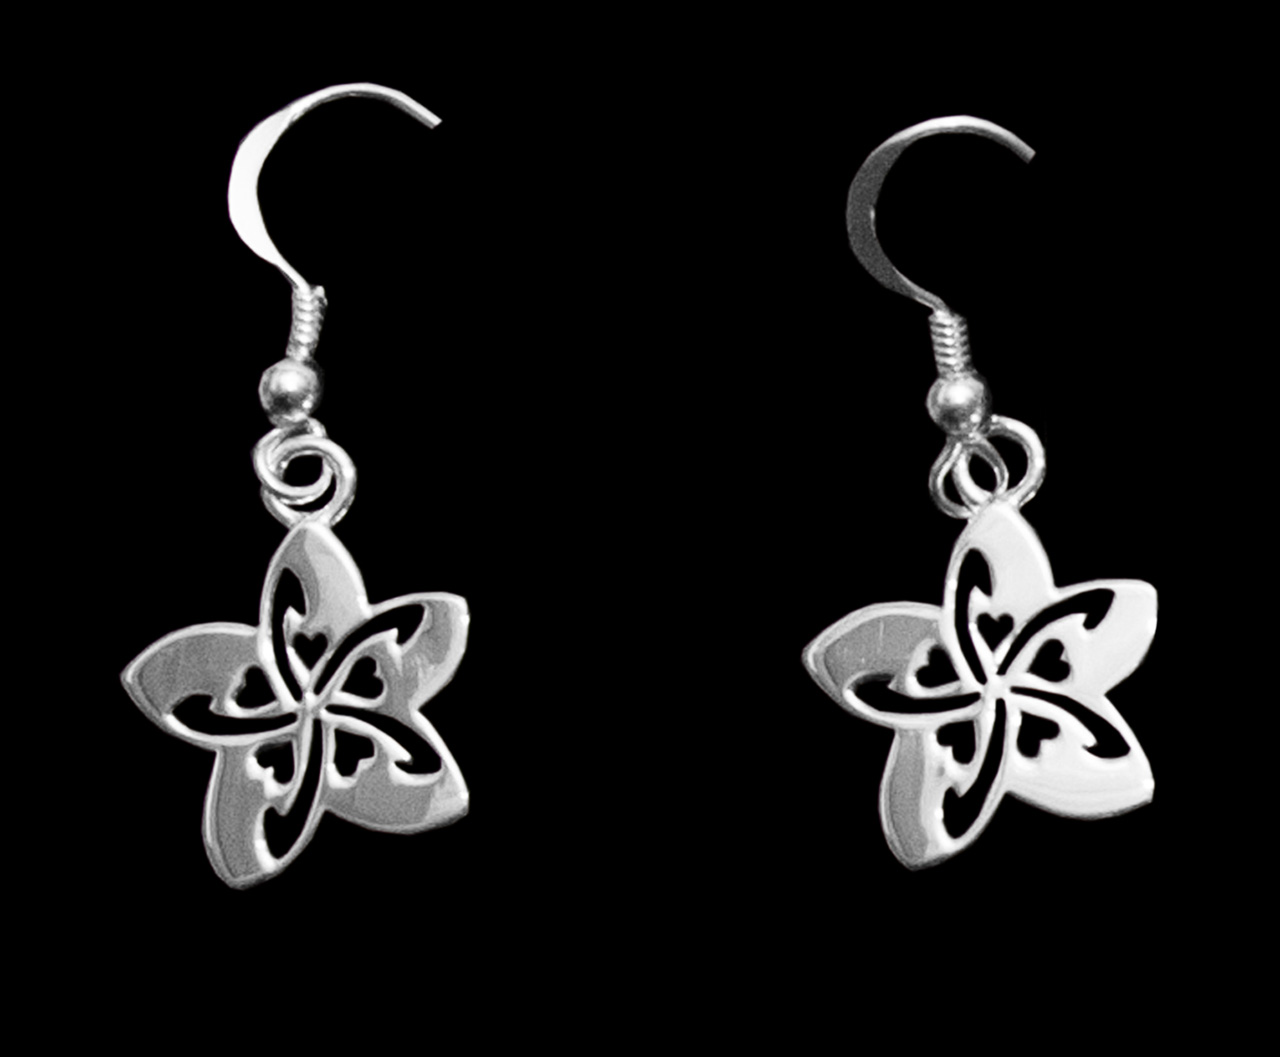 Sterling silver earrings plumeria flower with small heart cutouts